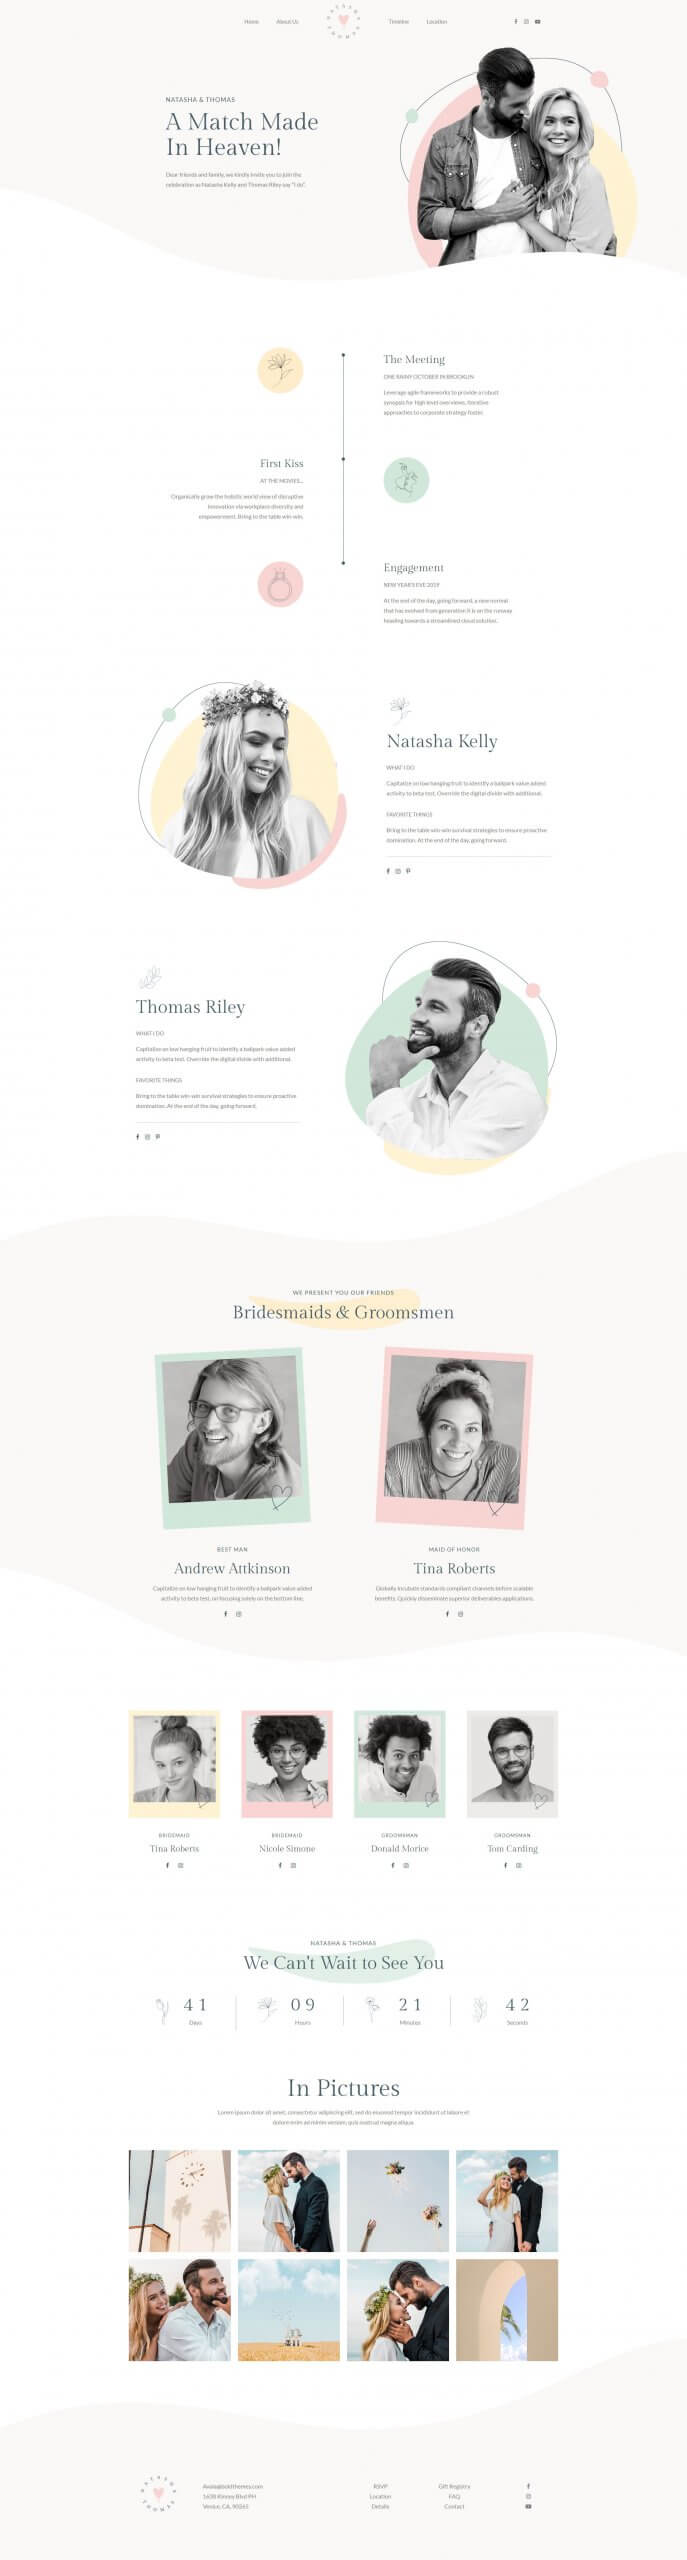 http://avala.bold-themes.com/wp-content/uploads/2021/02/Summer-About-Us-Couples-scaled.jpg